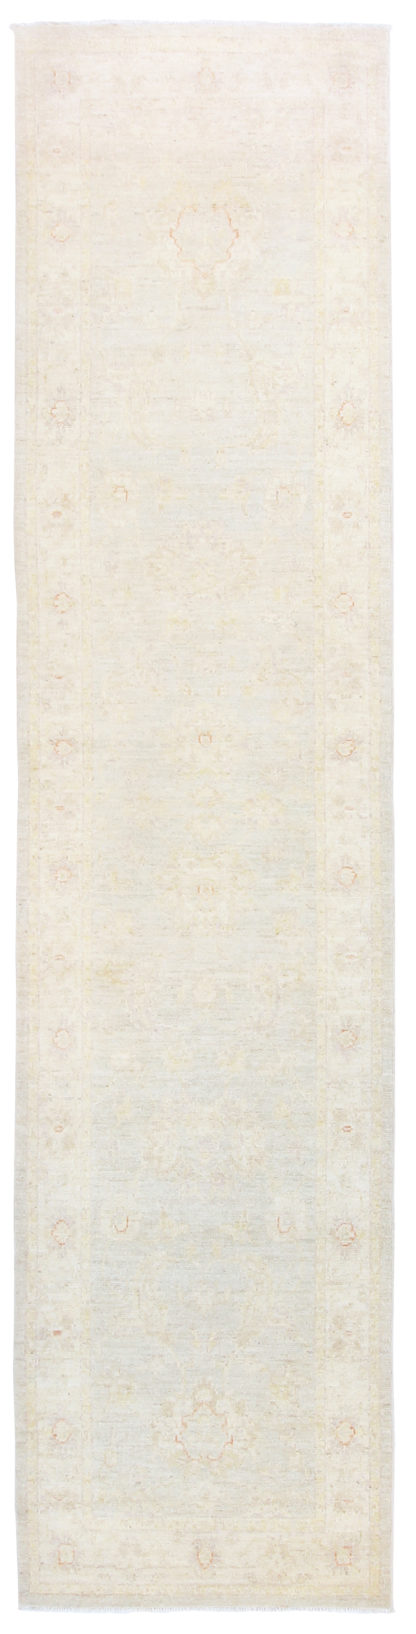 Hand Knotted Wool Runner 3x11 Ivory Area Rug